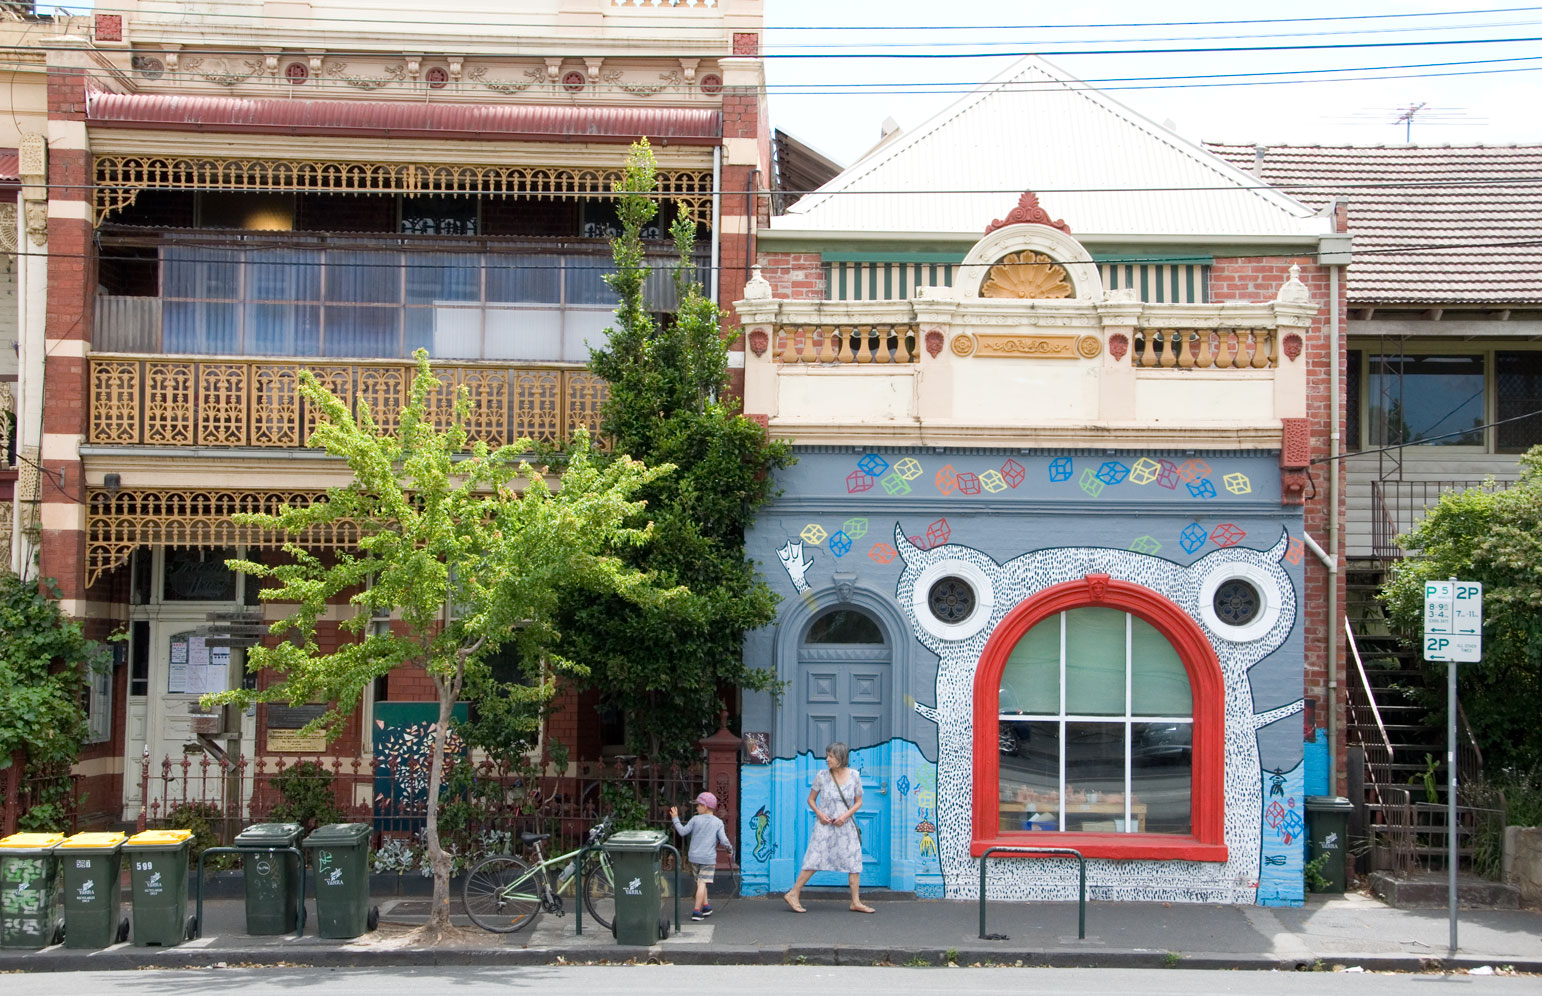 all-those-shapes_-_randoms_-_screamy-house_-_north-fitzroy